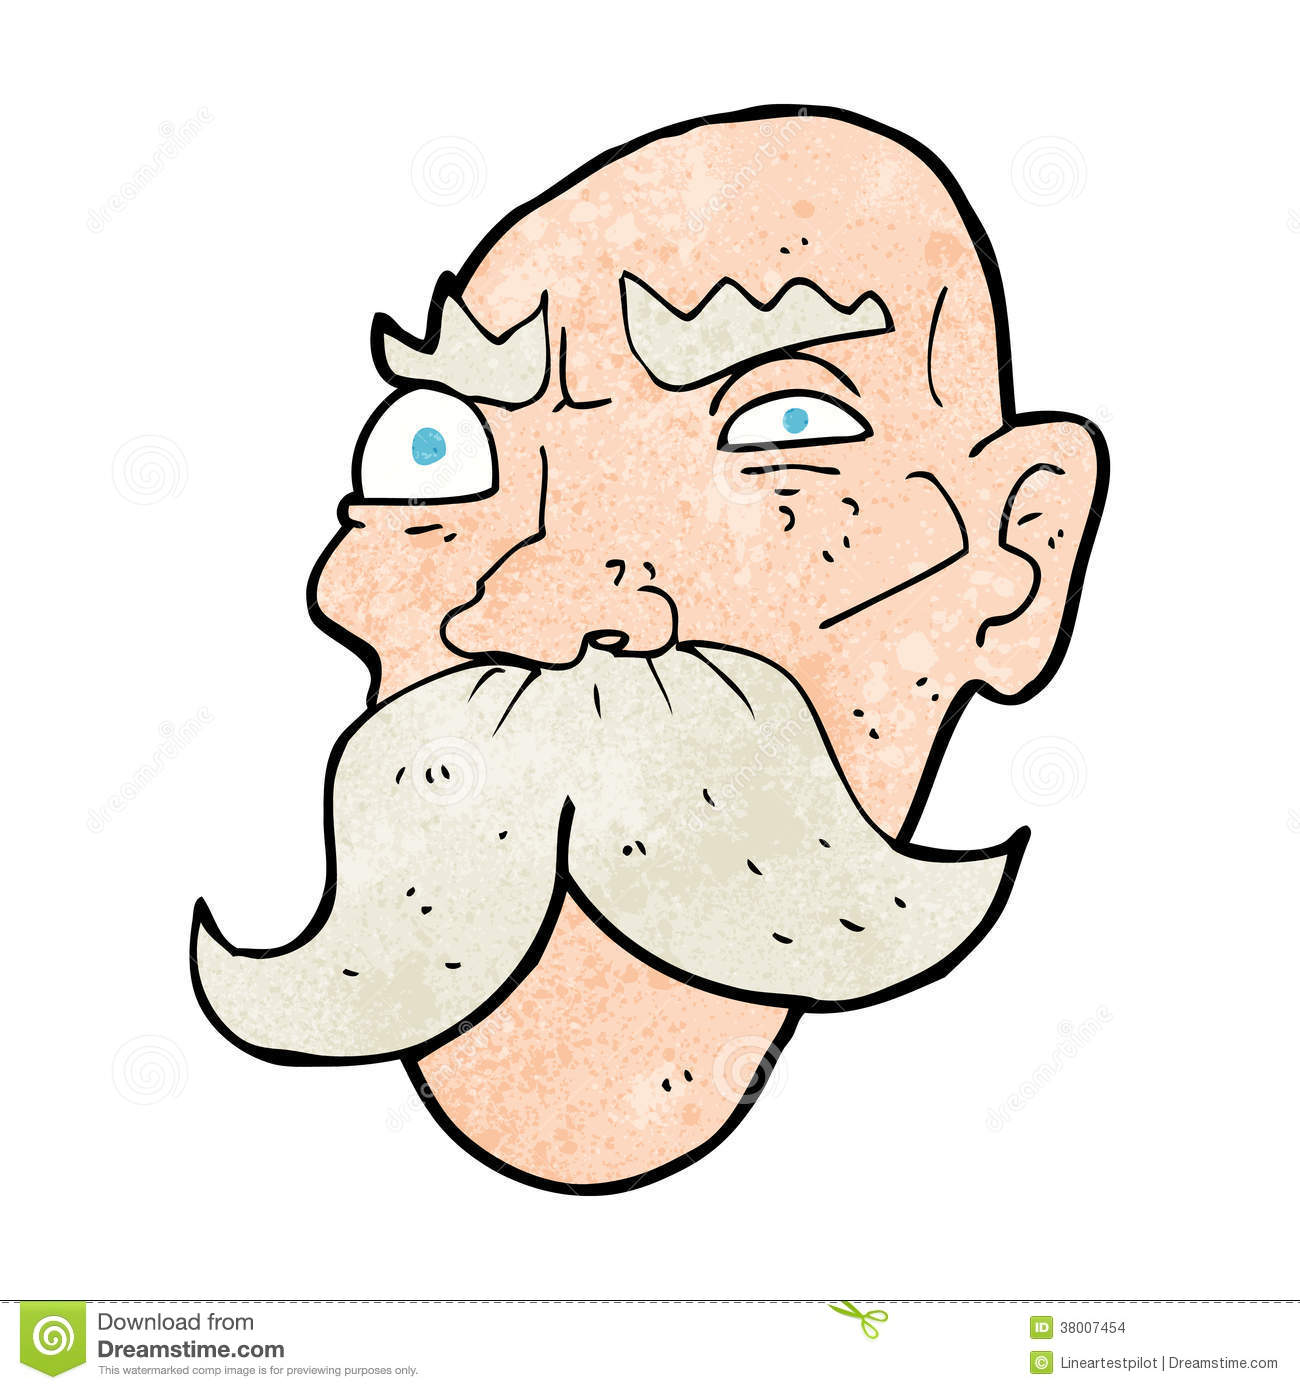 Angry White Man Cartoons and Comics - cartoonstock.com